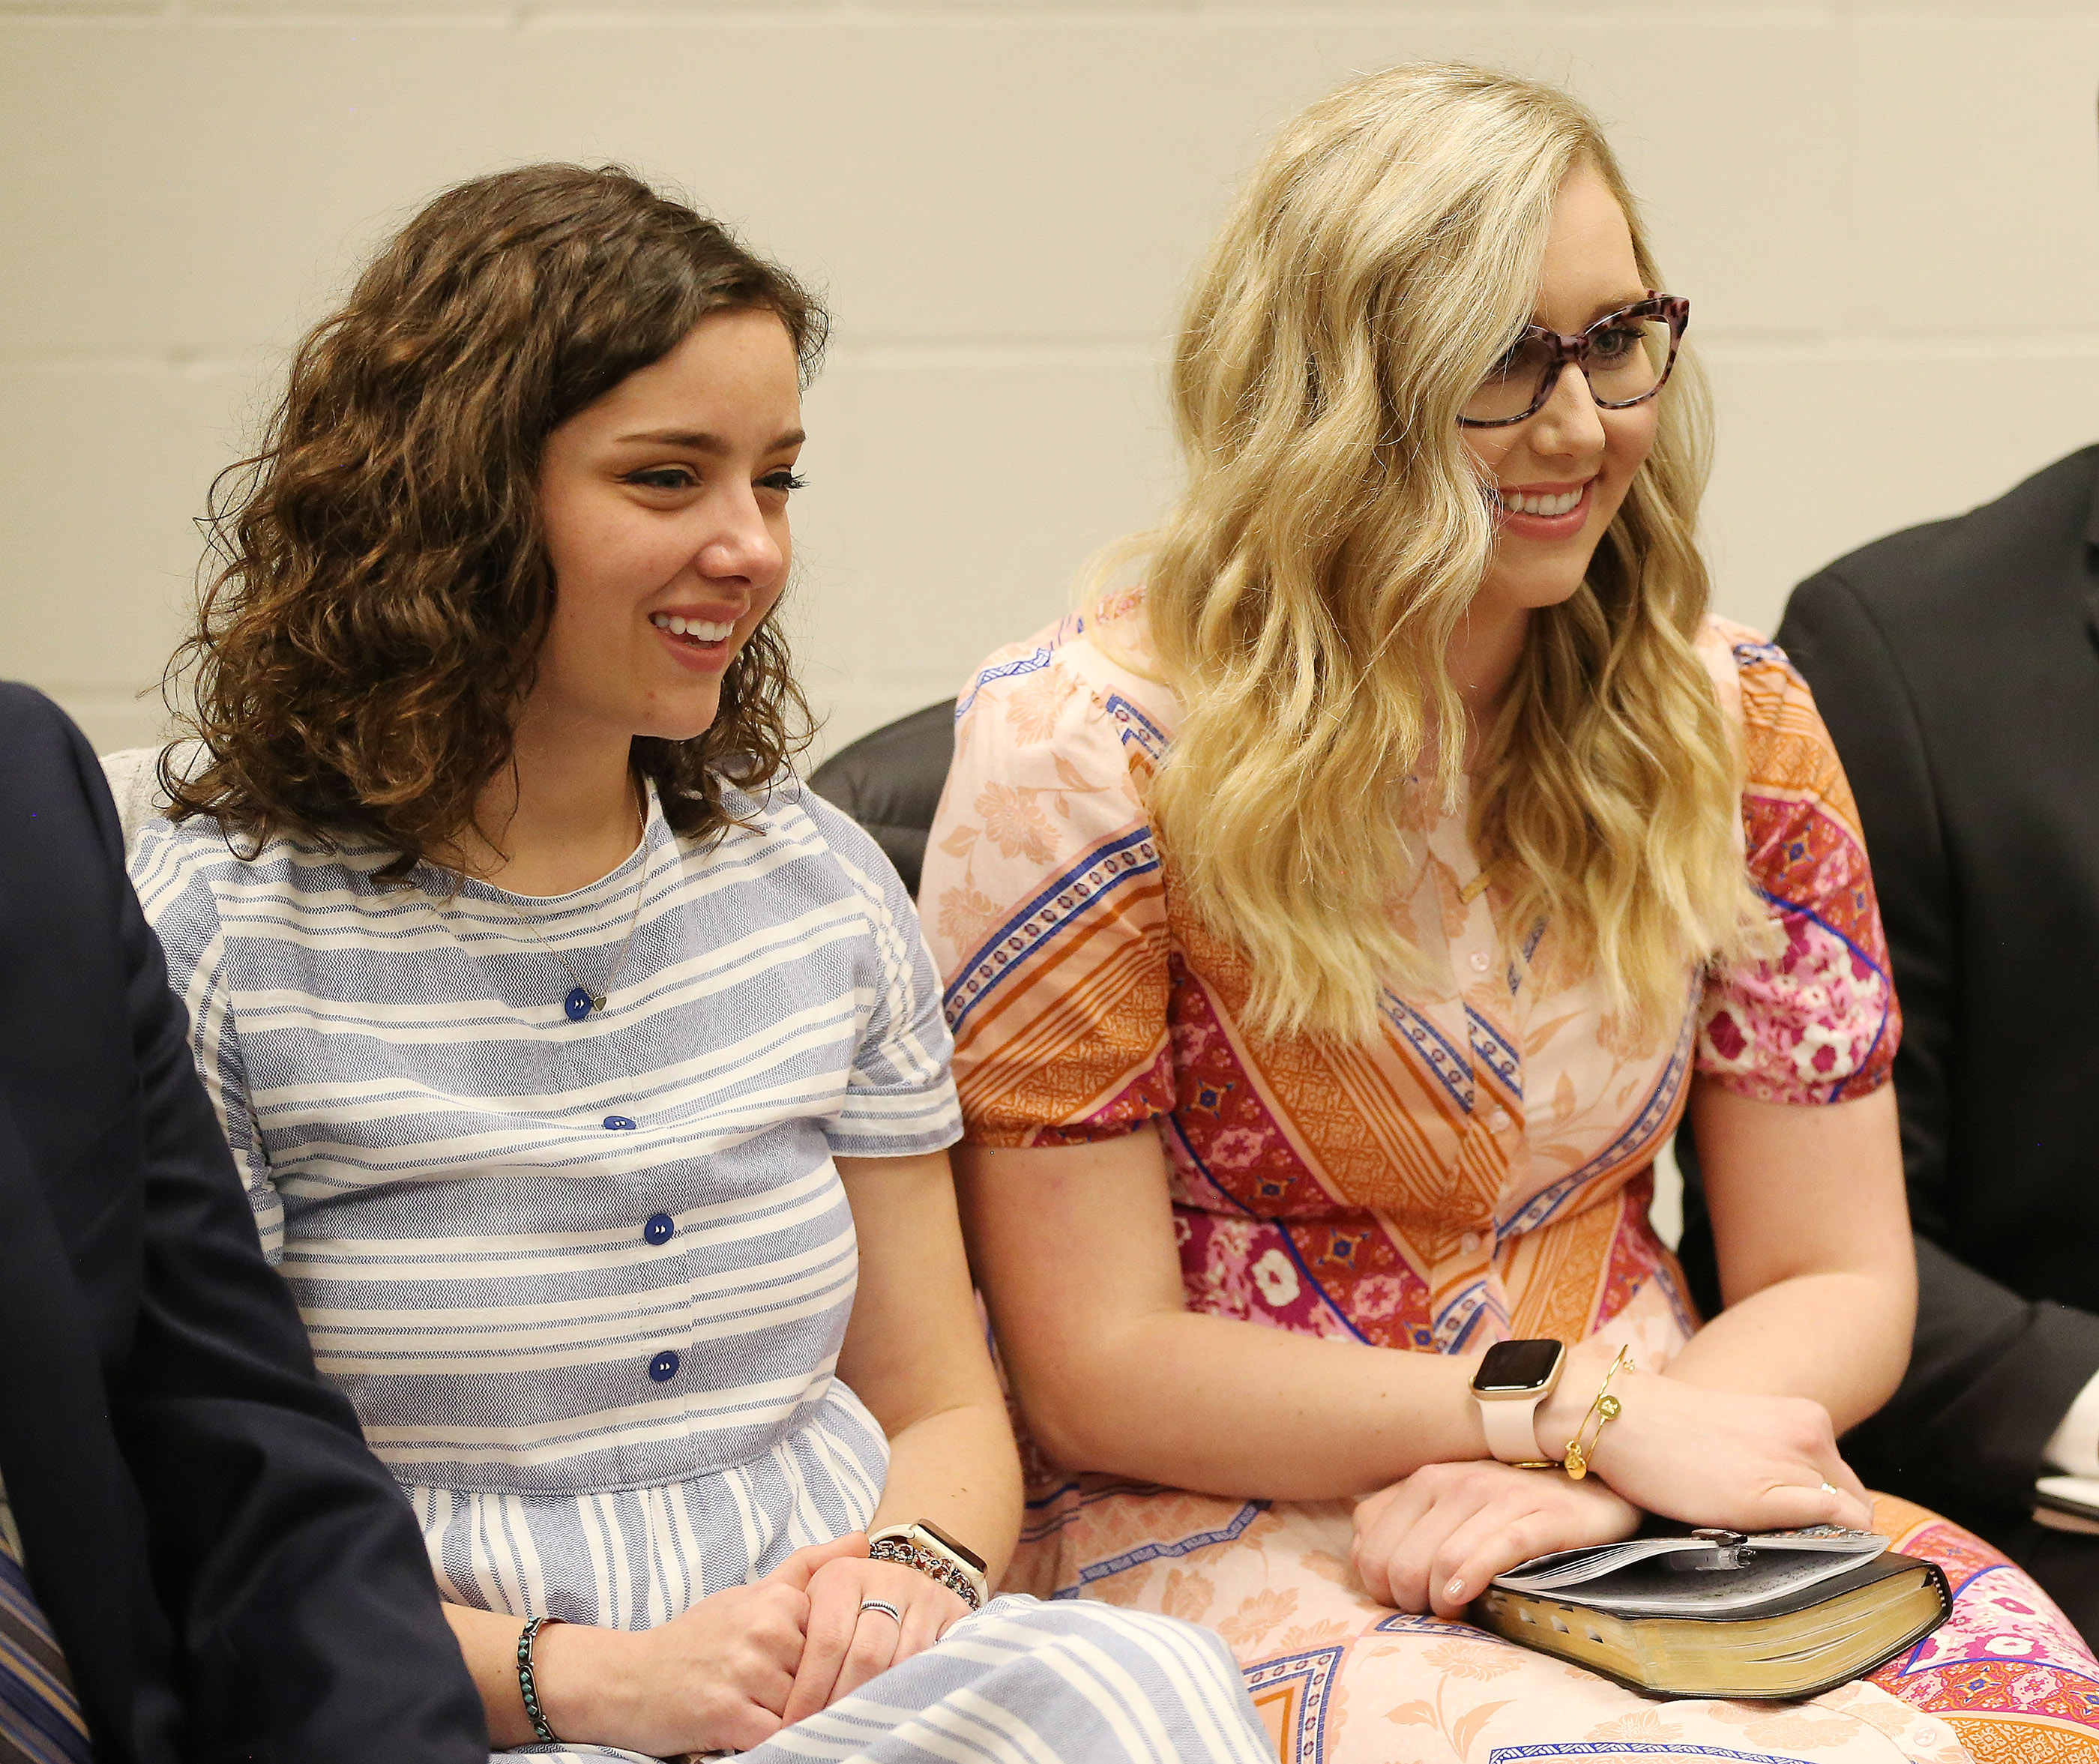 Avery Beeson and Rebecca Adams attend a meeting of 10 young single adults with President Russell M. Nelson of The Church of Jesus Christ of Latter-day Saints in Phoenix on Sunday, Feb. 10, 2019.